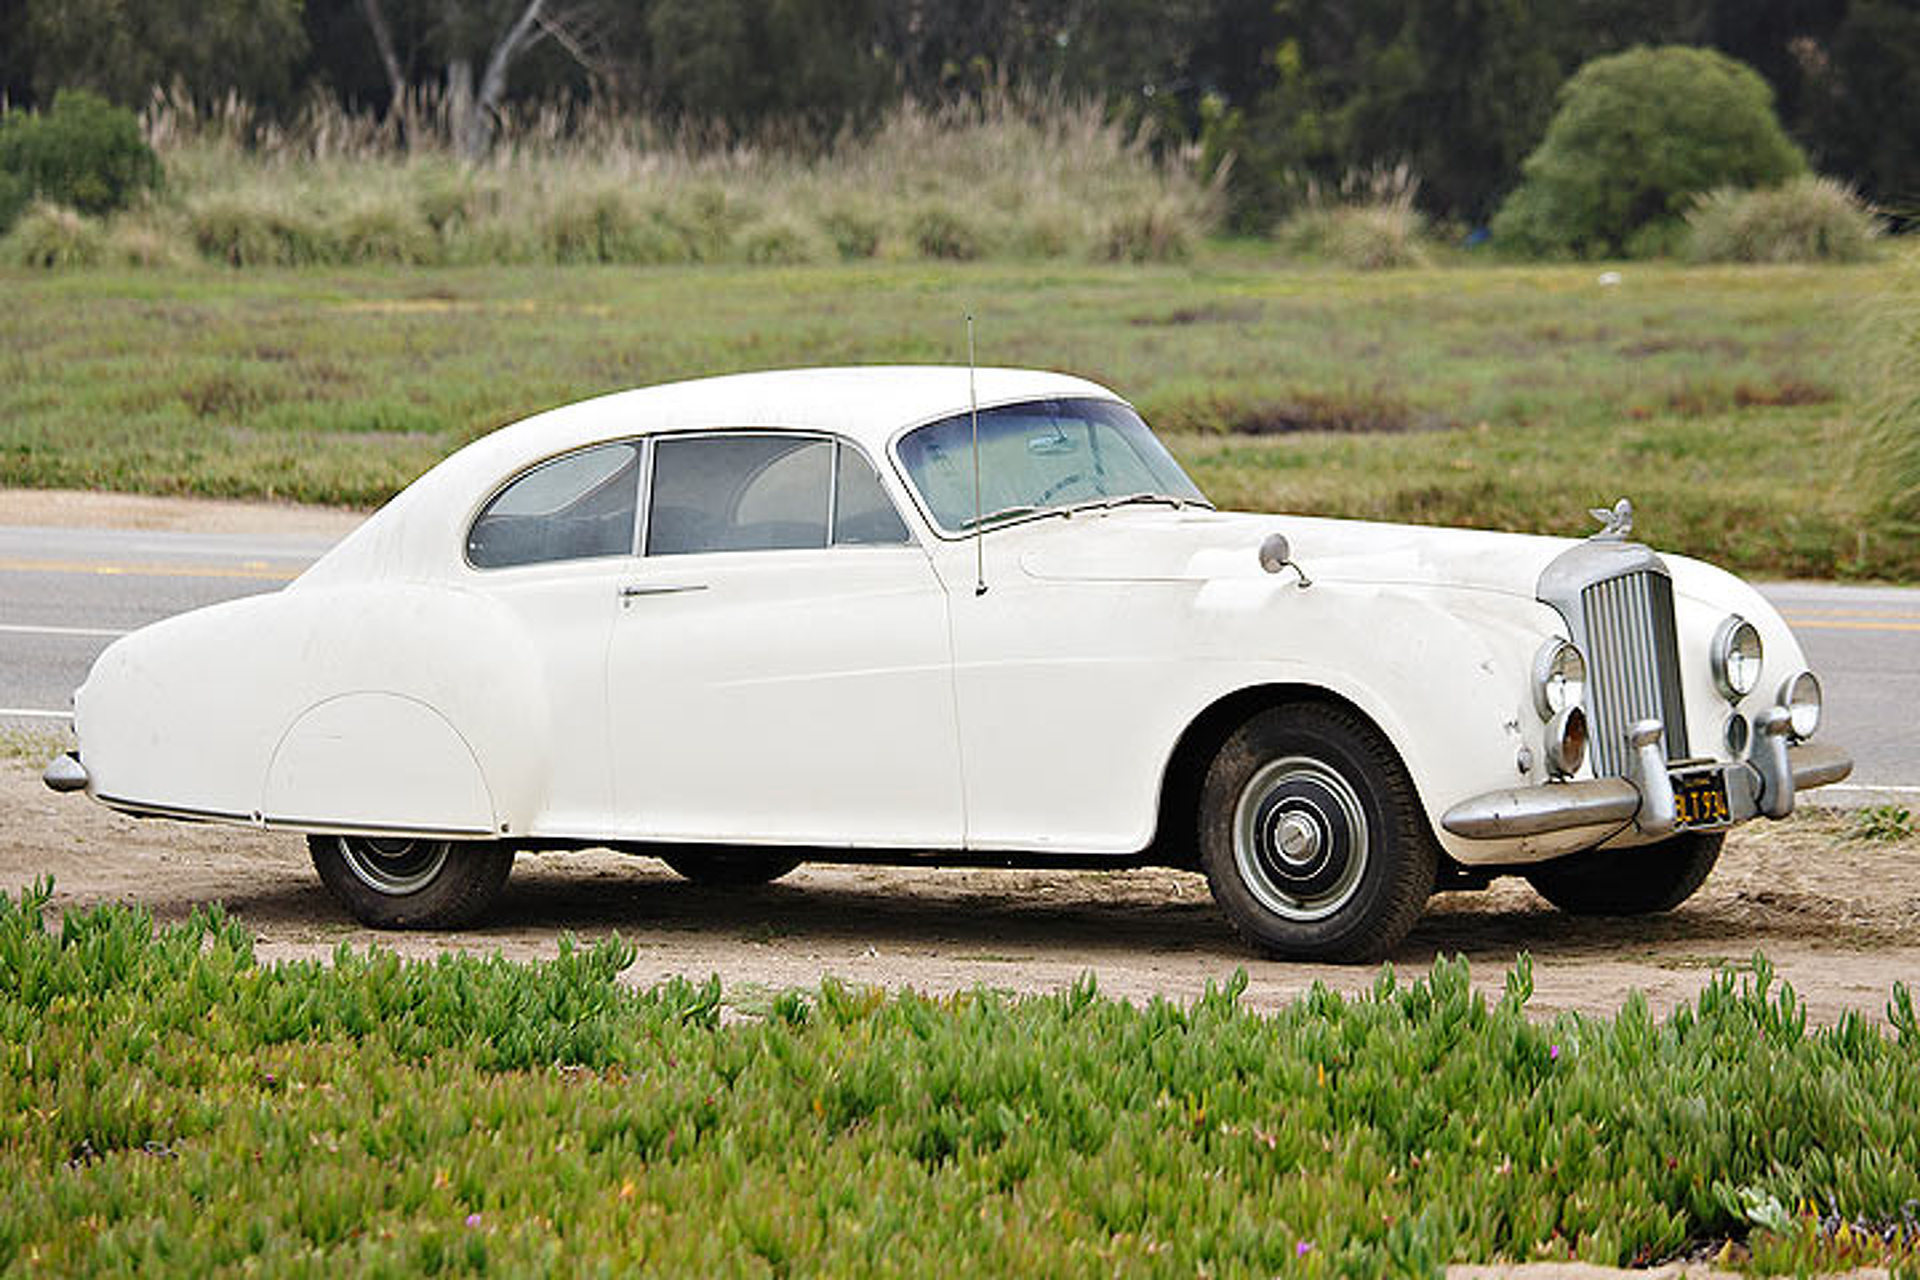 This 1953 Bentley R-Type is a Real-Life James Bond Car